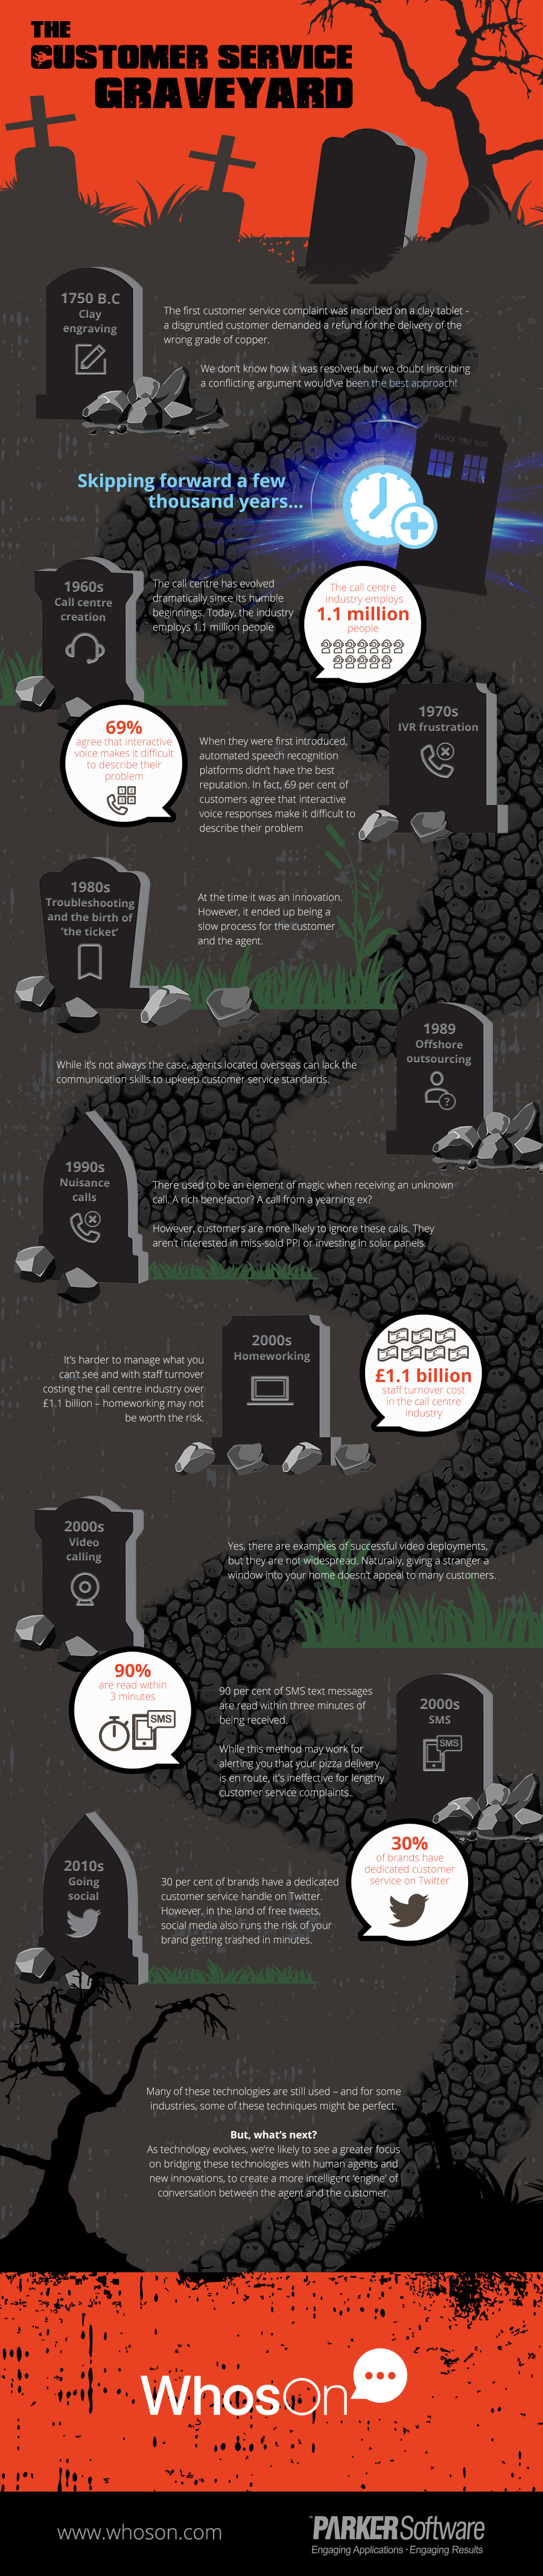 https://www.whoson.com/wp-content/uploads/2017/04/WhosOn-Customer-Service-Graveyard-Infographic-HiDPI.jpg